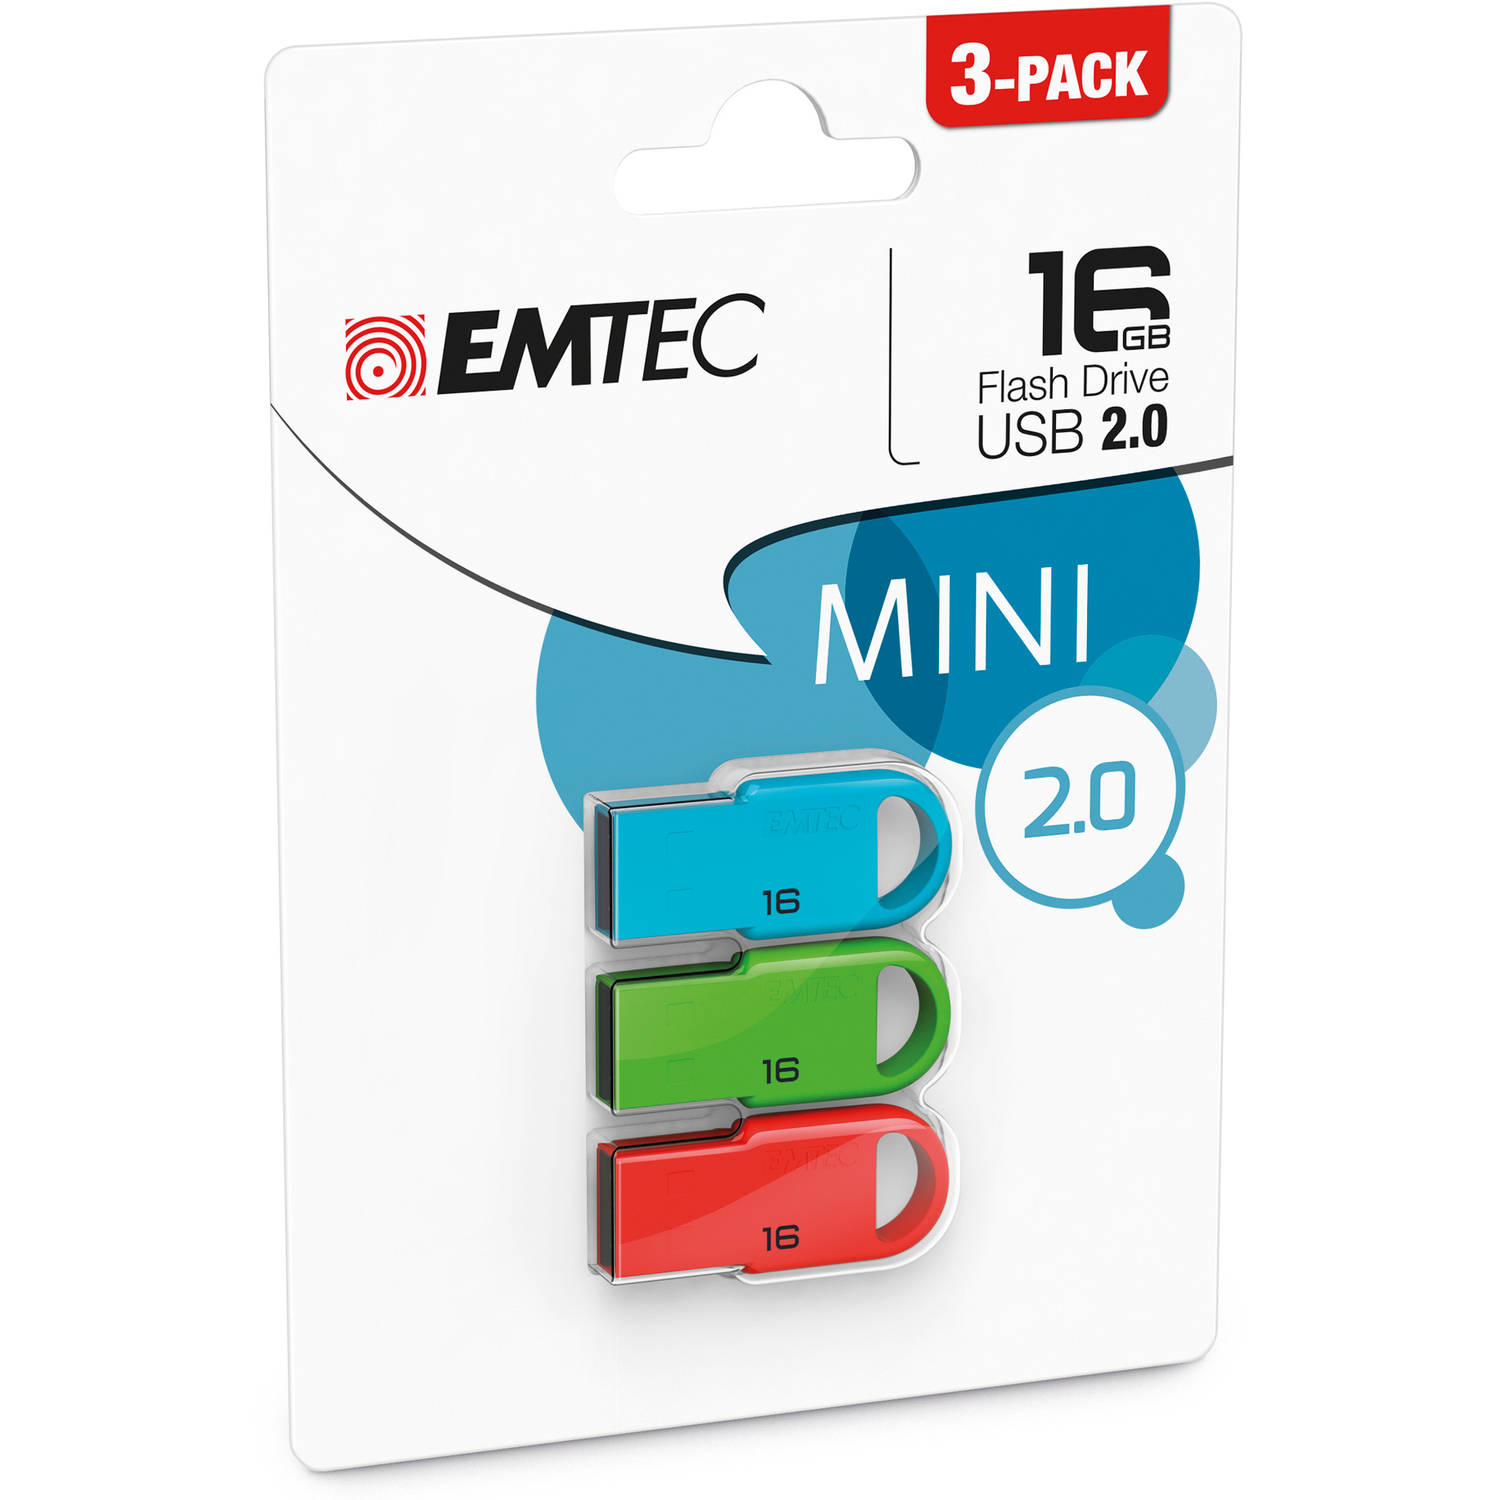 EMTEC 16GB Mini USB 2.0 Flash Drive, 3-Pack